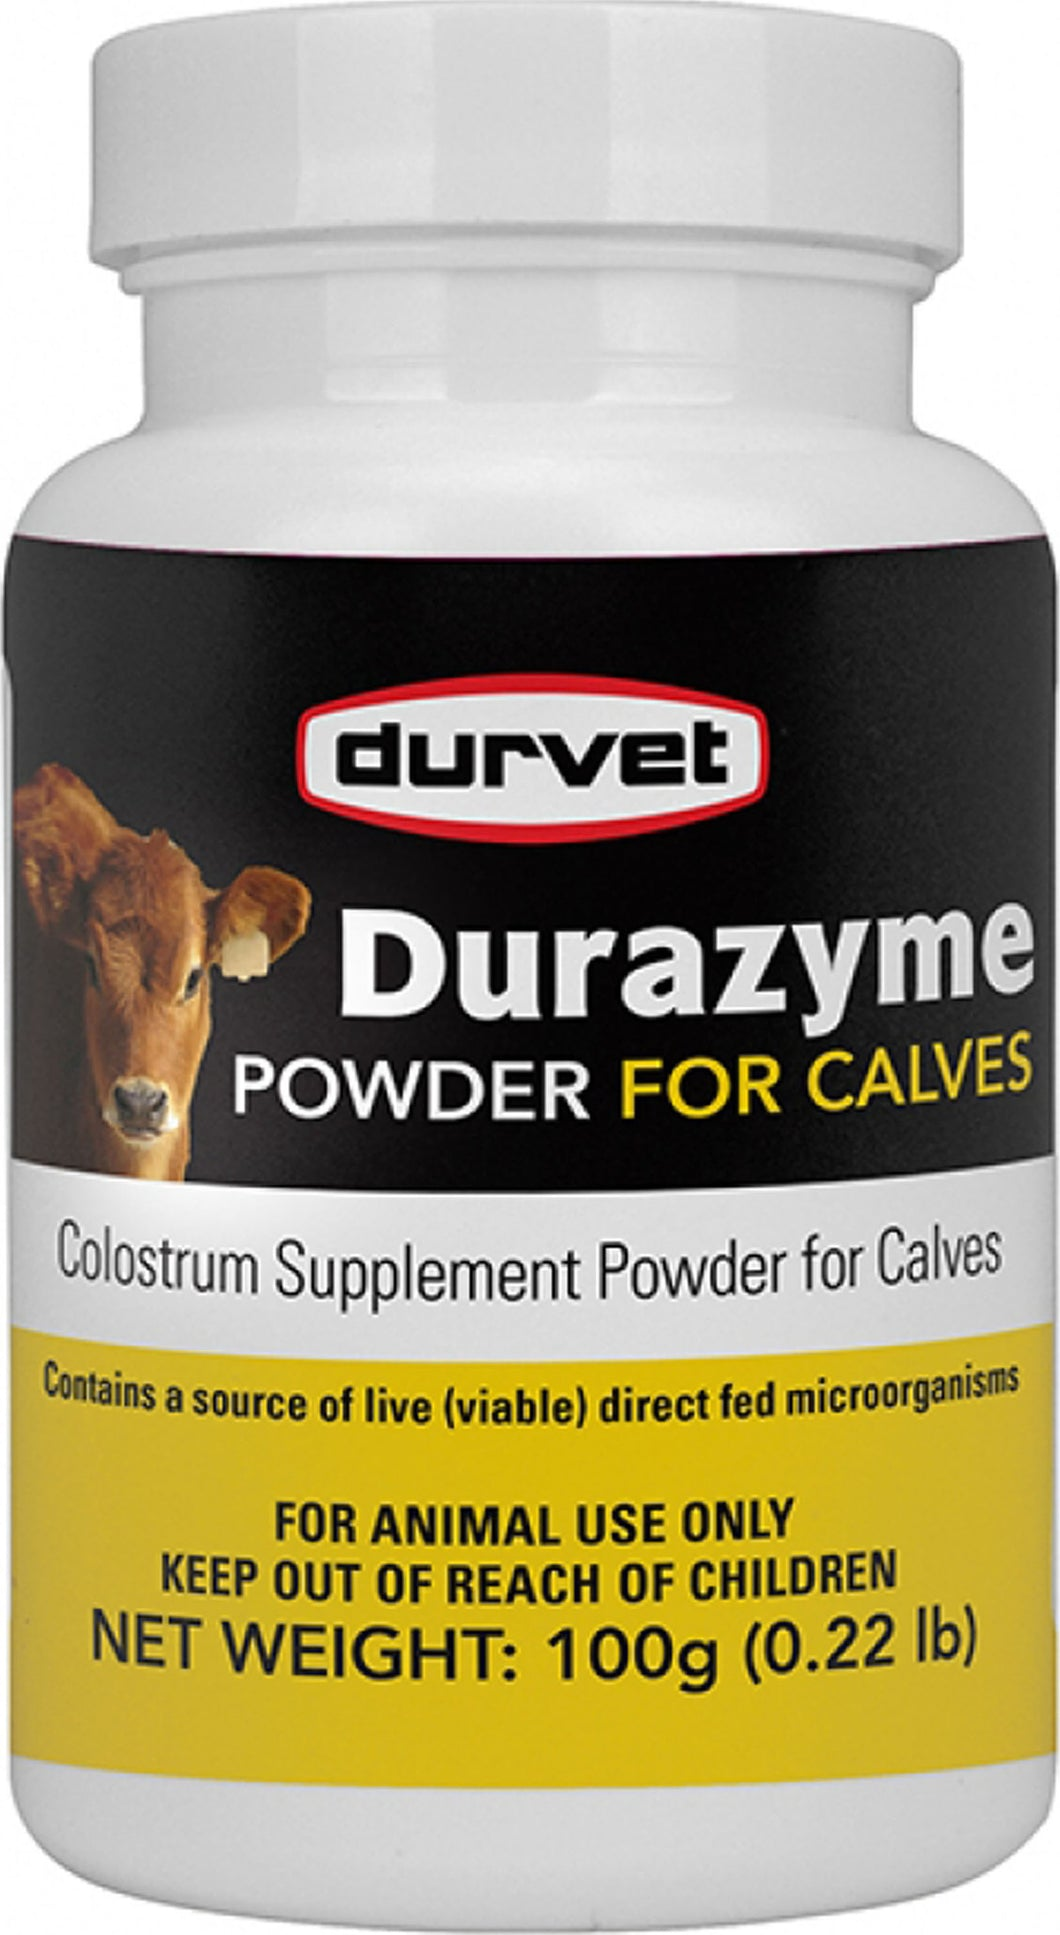 Durazyme Powder For Calves